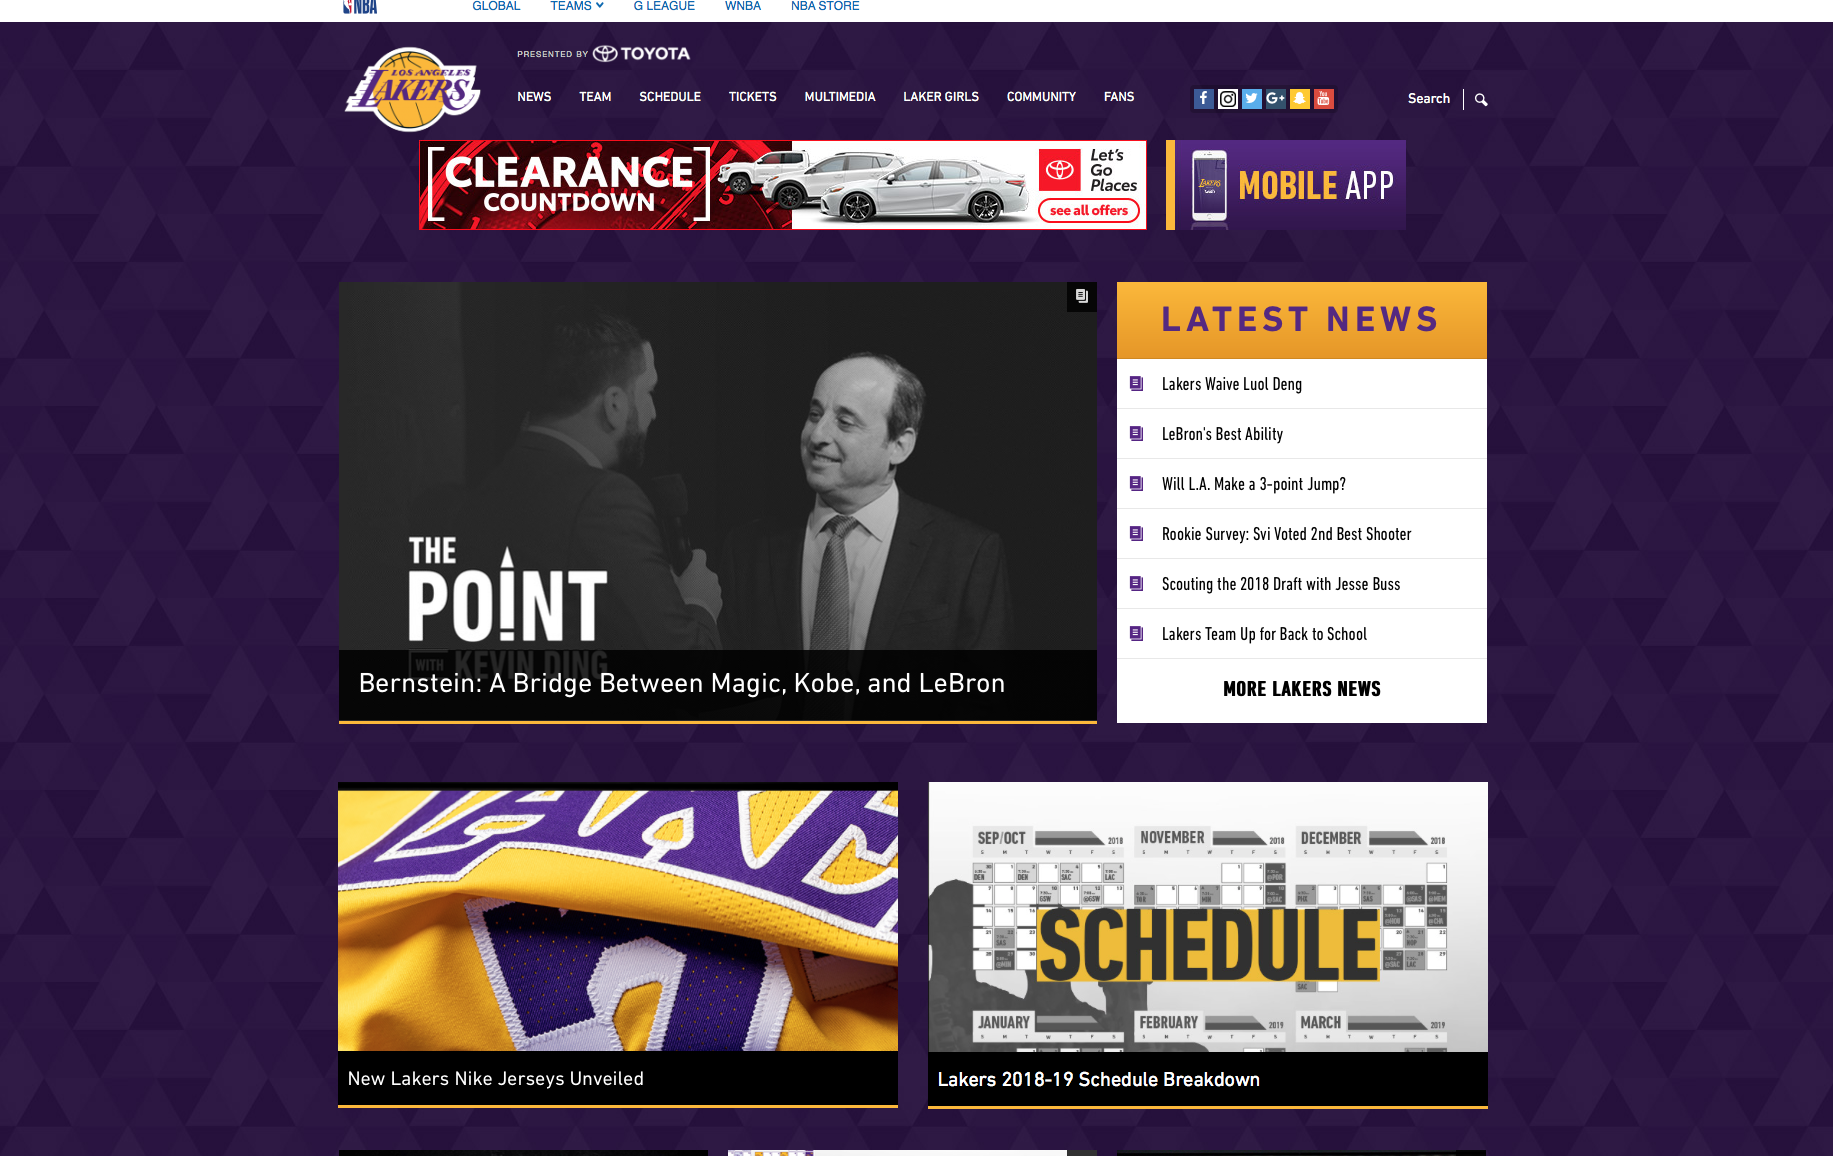 Complematary Lakers Los Angeles Lakers Mobile App